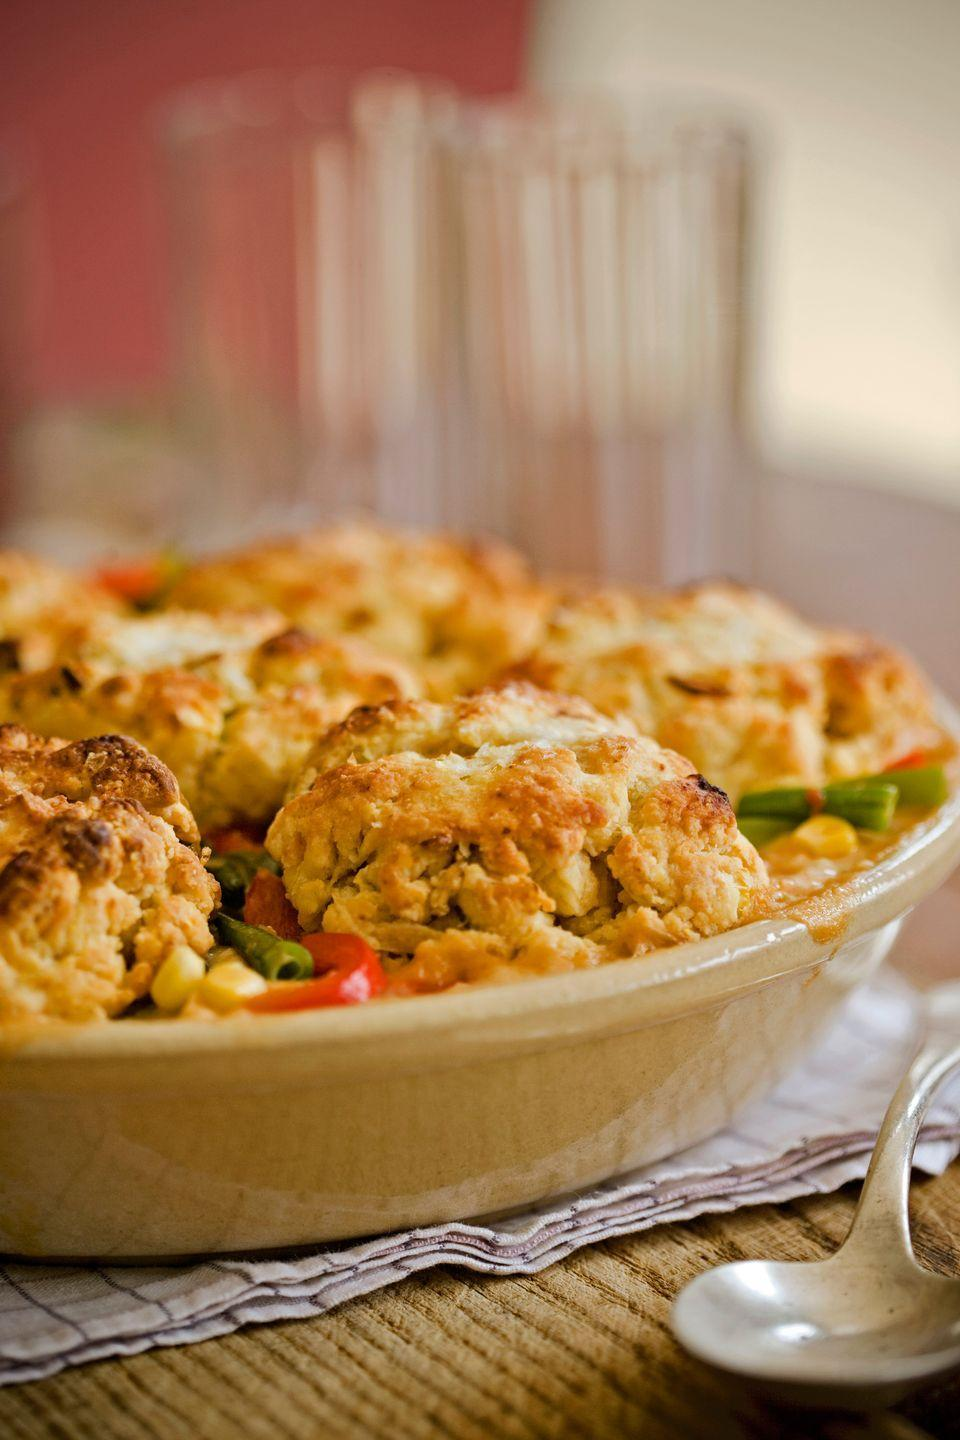 """<p>Quick homemade biscuits top this turkey cobbler, which owes some of its smoky flavor to chipotle peppers in adobo sauce. </p><p><strong><a href=""""https://www.countryliving.com/food-drinks/recipes/a2370/smoked-turkey-cobbler-recipe/"""" rel=""""nofollow noopener"""" target=""""_blank"""" data-ylk=""""slk:Get the recipe"""" class=""""link rapid-noclick-resp"""">Get the recipe</a>.</strong></p>"""